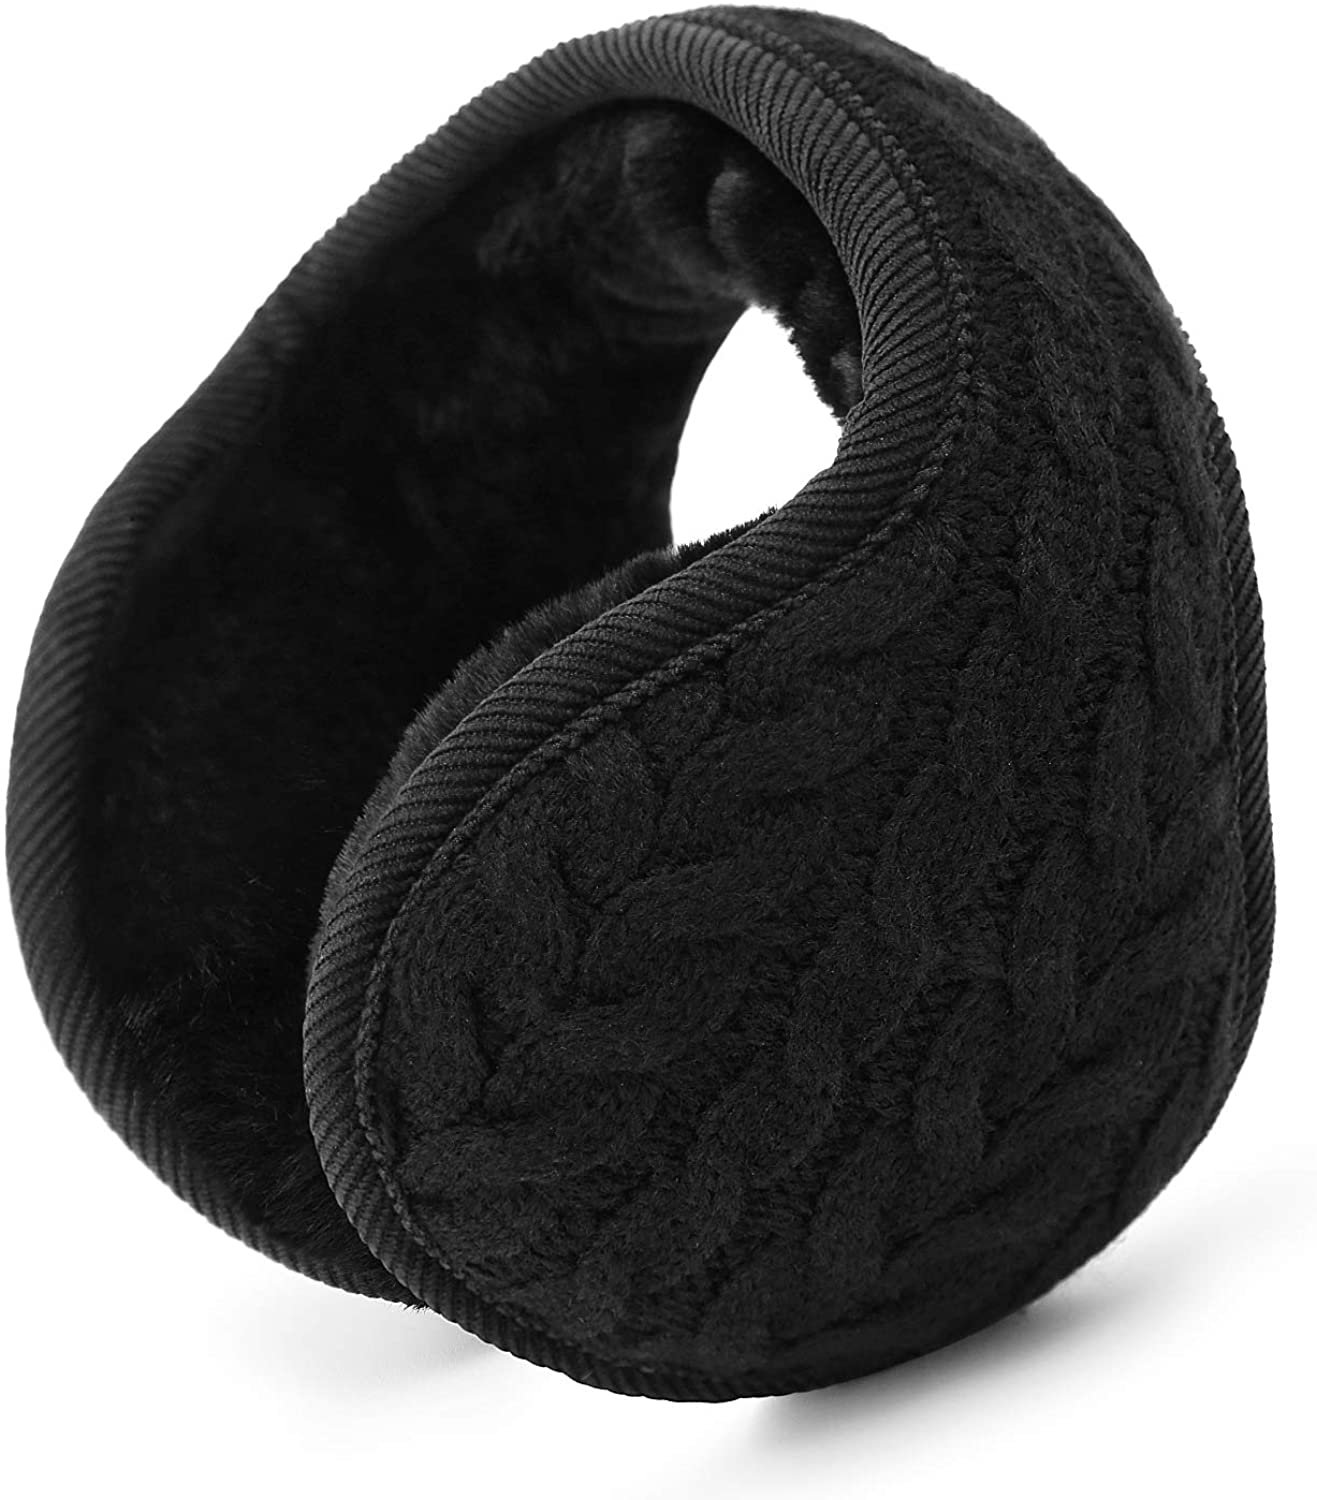 Winter thickening outdoor unisex foldable warm plush earmuffs, behind black style